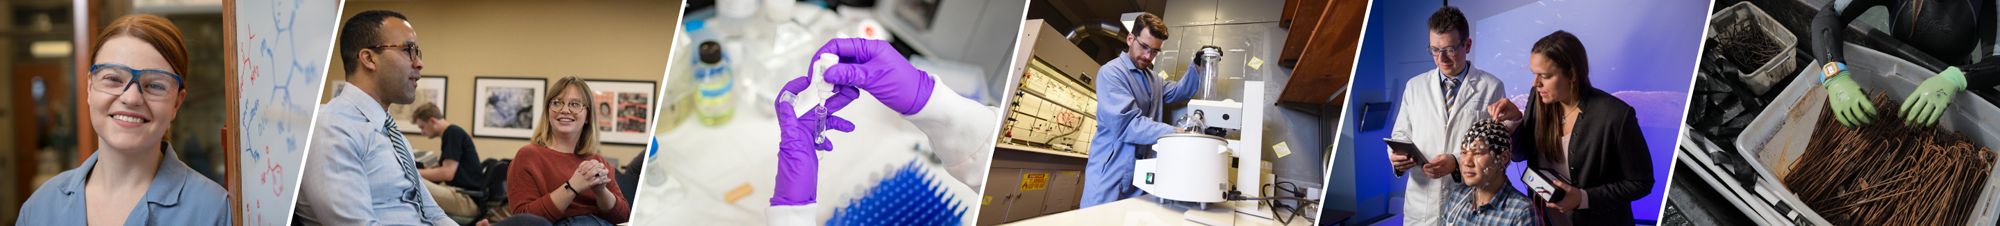 Multiple images of researchers working in the field. The first image a researcher in goggles smiling at the camera. The second image a professor and student talking. The third image is a detailed photo of two hands, in purple gloves, deal with lab equipment. The fourth image shows a researcher in the lab. The fifth image shows two researchers putting a web of sensors on a subjects head. The sixth image is a detailed photo of two gloves hands in a bin of rusted equipment used in marine research.